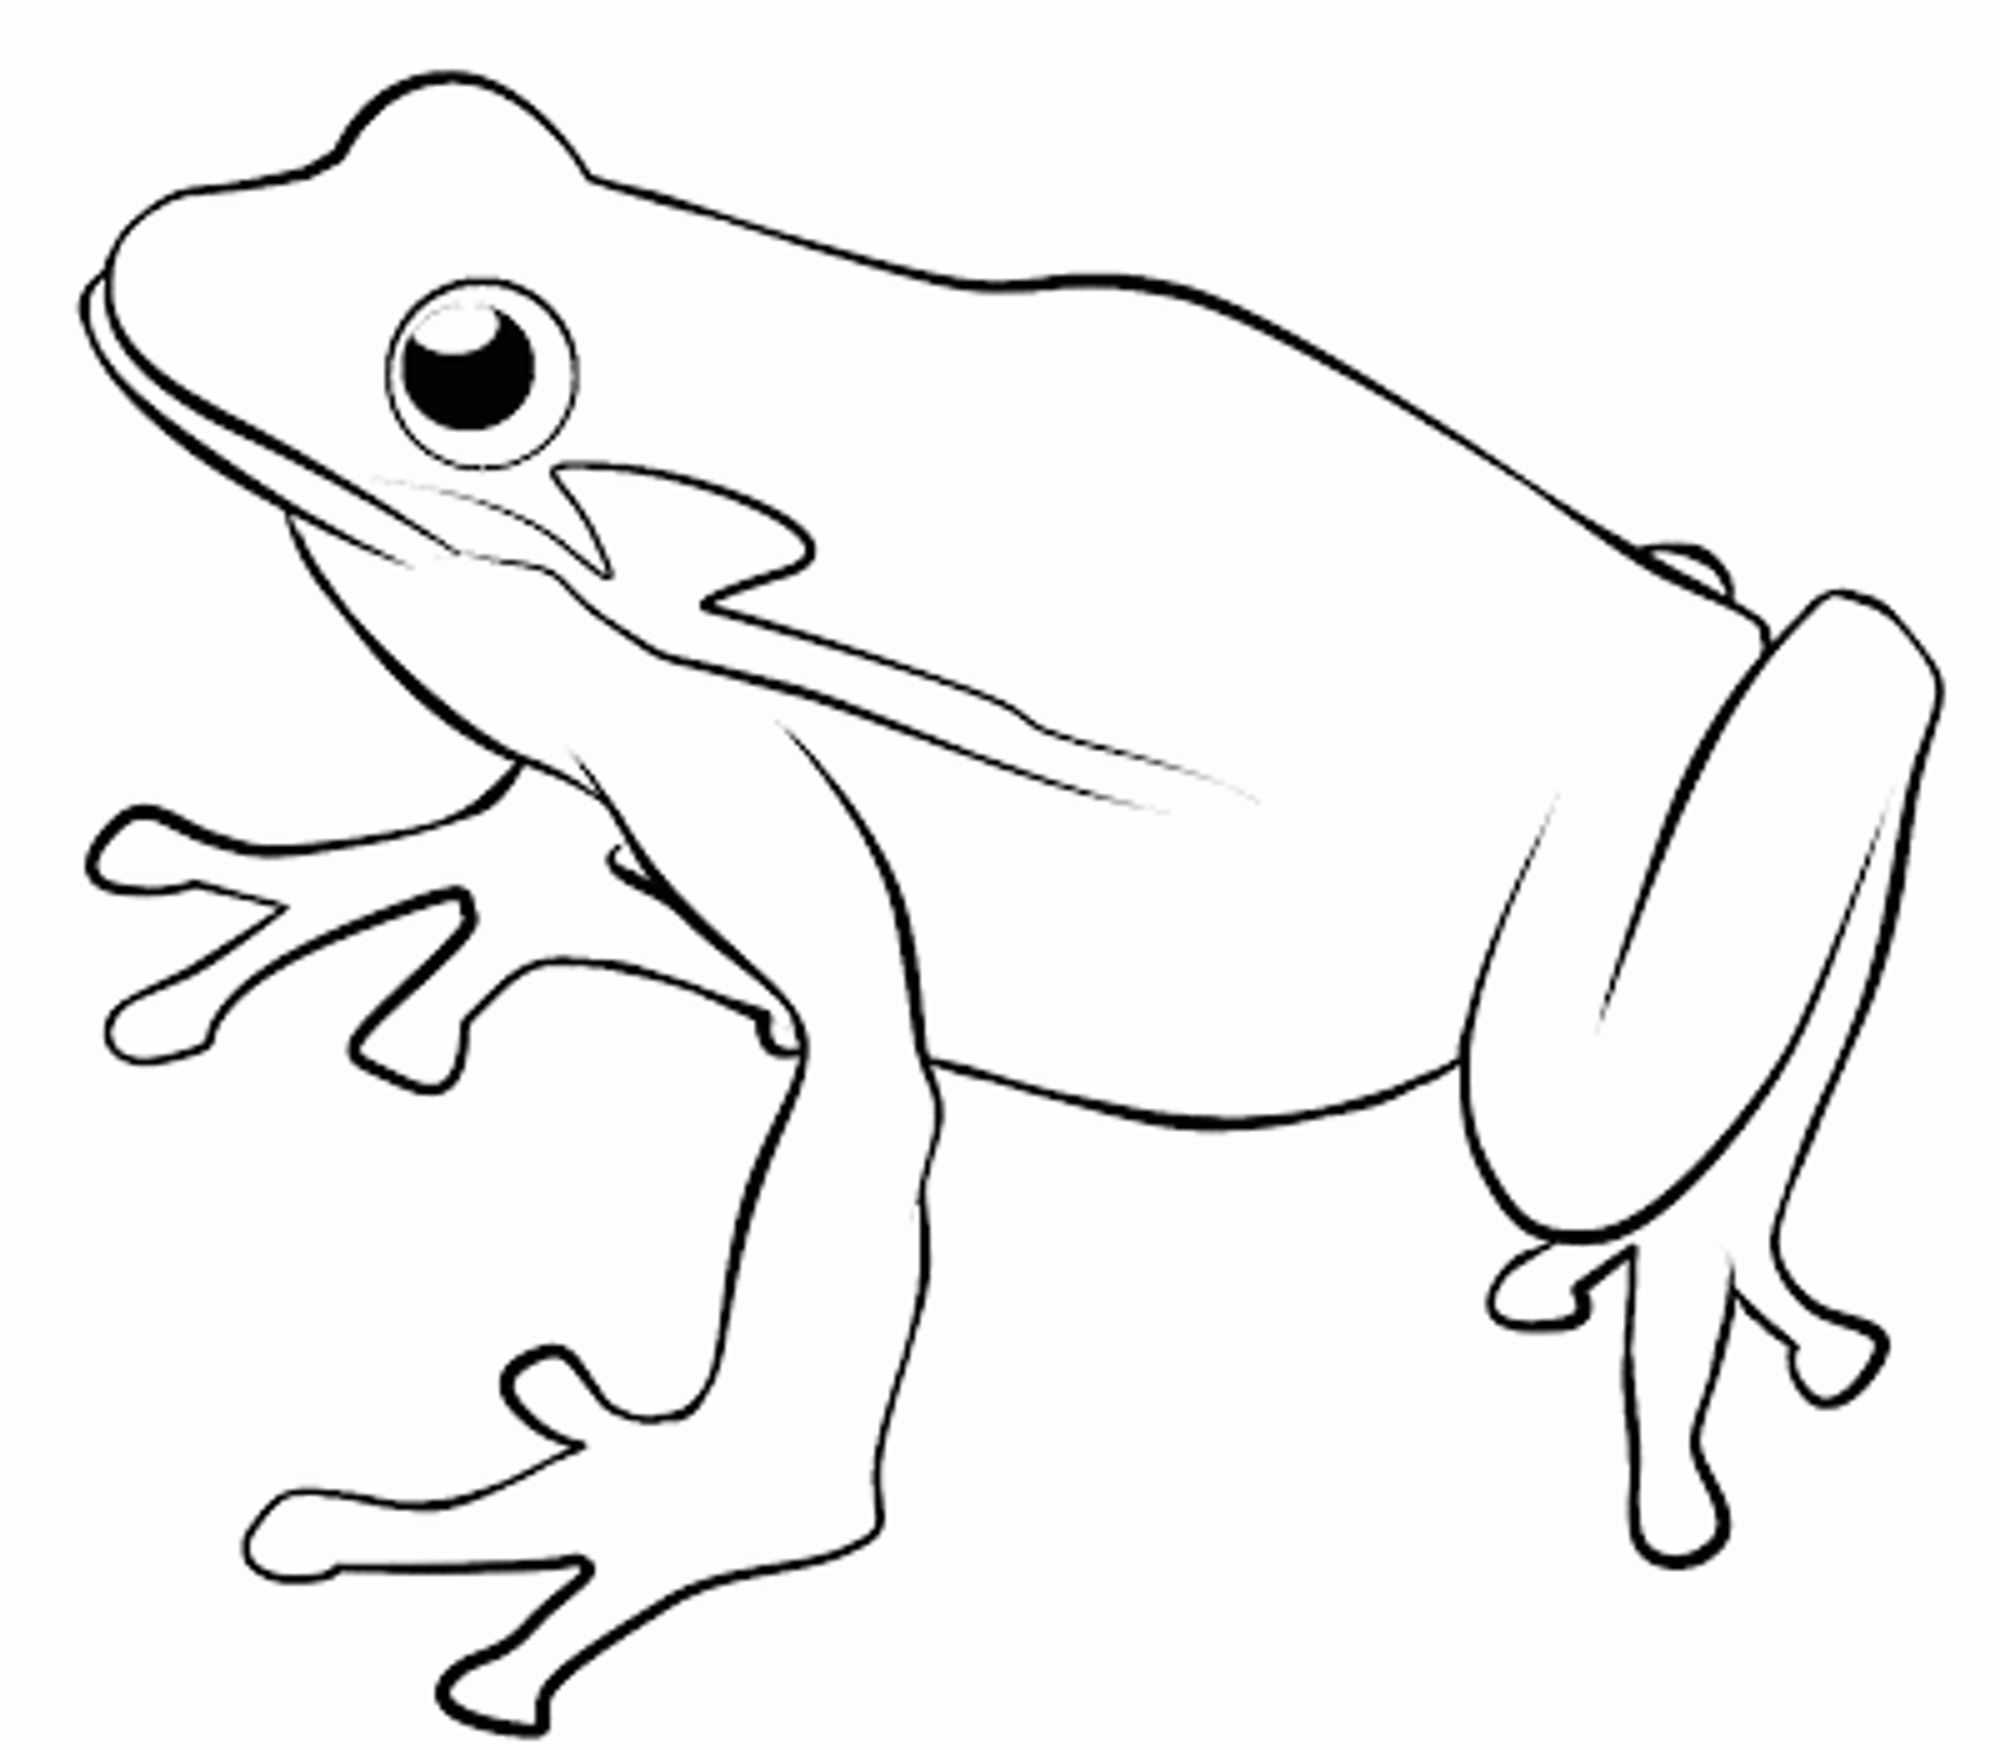 2000x1750 Coloring Pages Luxury Frog Drawing For Kids Coloring Pages Frog